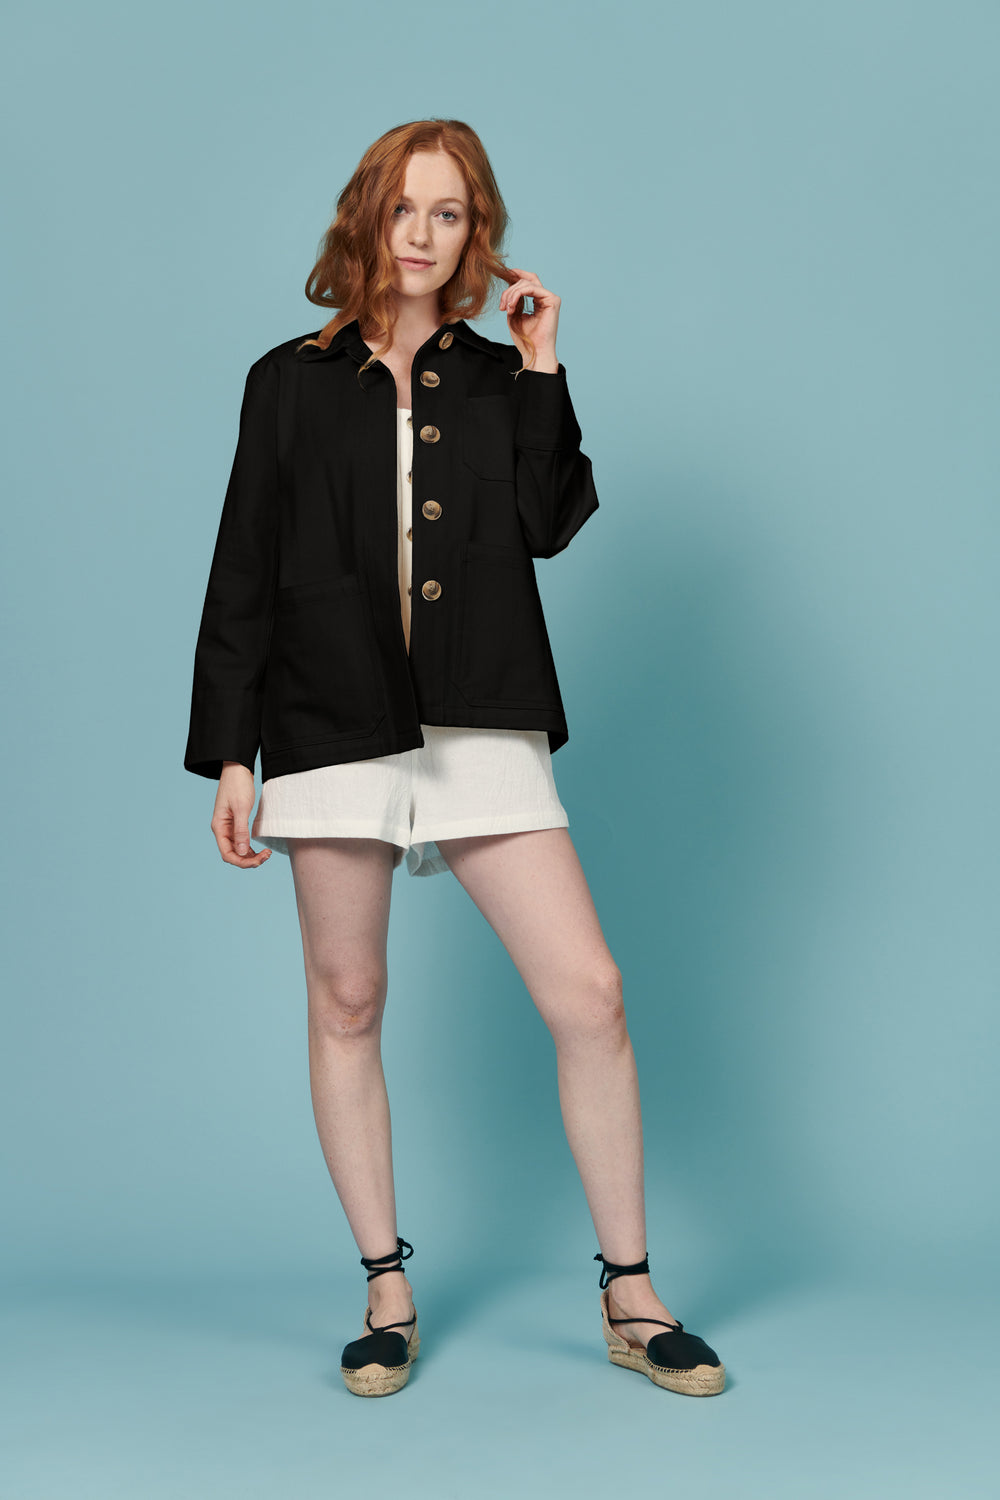 Jordan Jacket in Black - Whimsy & Row